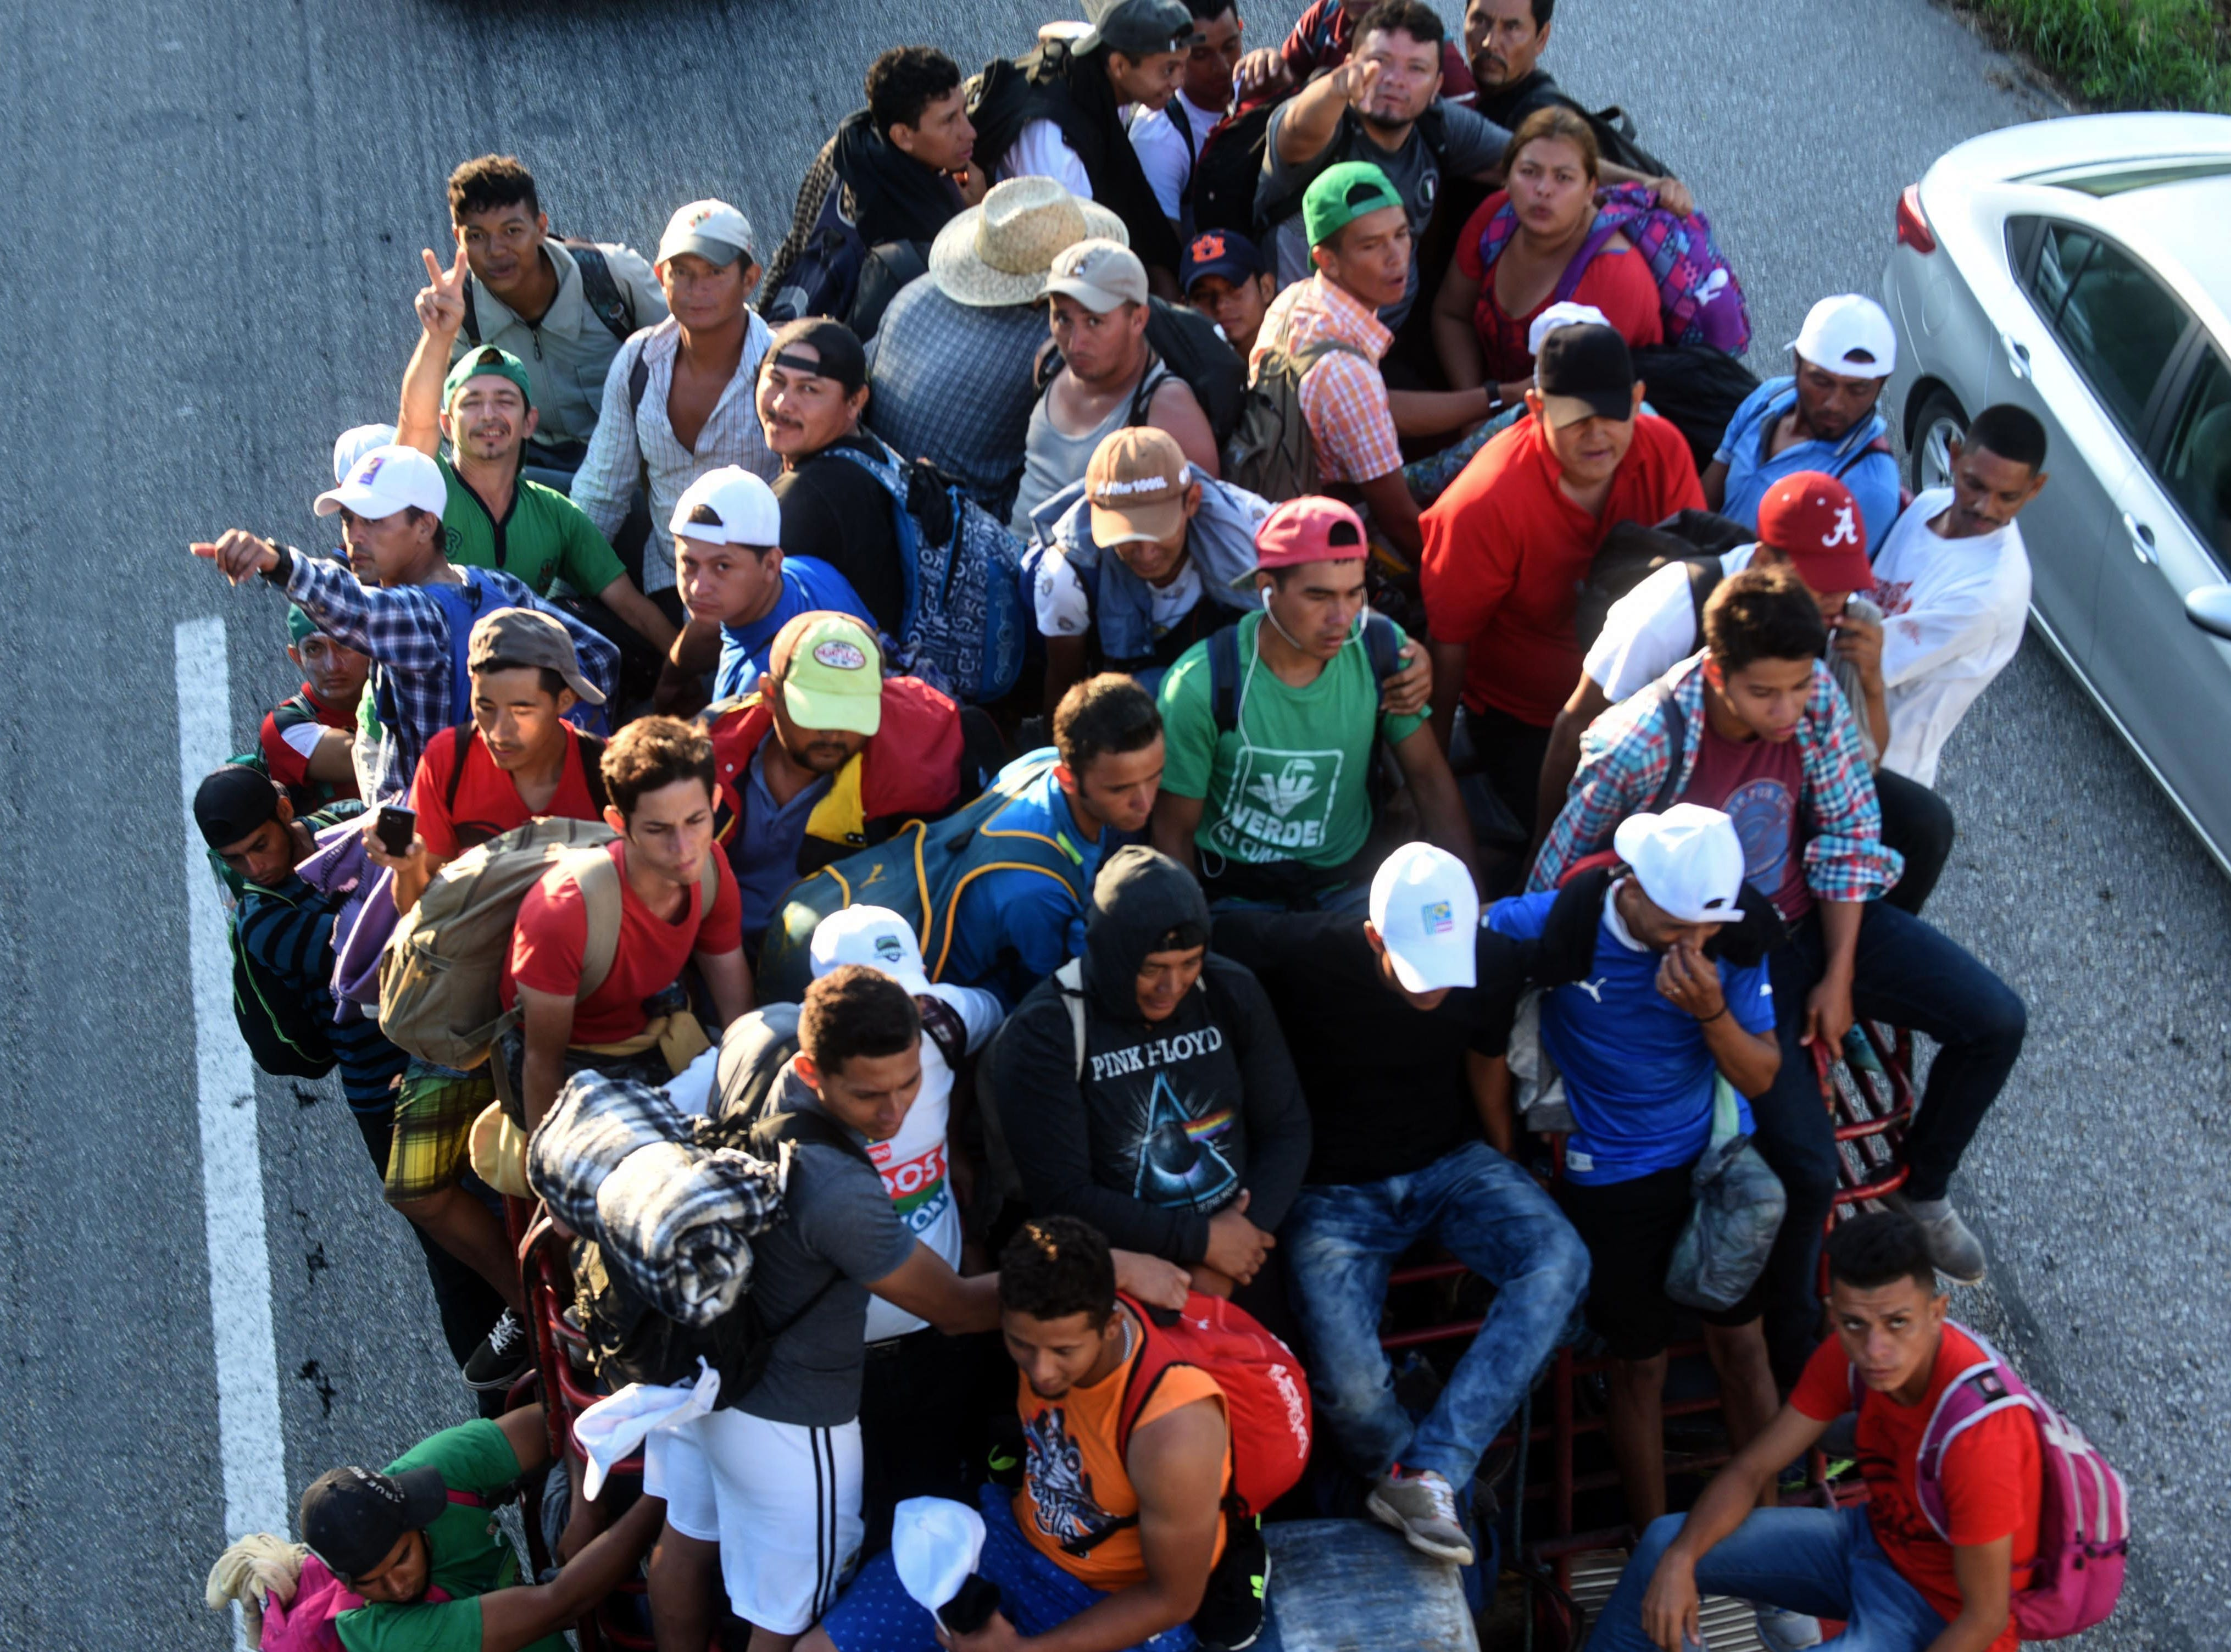 Honduran migrants heading in a caravan to the US, travel aboard a truck in Mapastepec on their way to Pijijiapan Chiapas state, Mexico, on October 25, 2018. - Thousands of Central American migrants crossing Mexico toward the United States in a caravan have resumed their long trek, walking about 12 hours to their next destination.